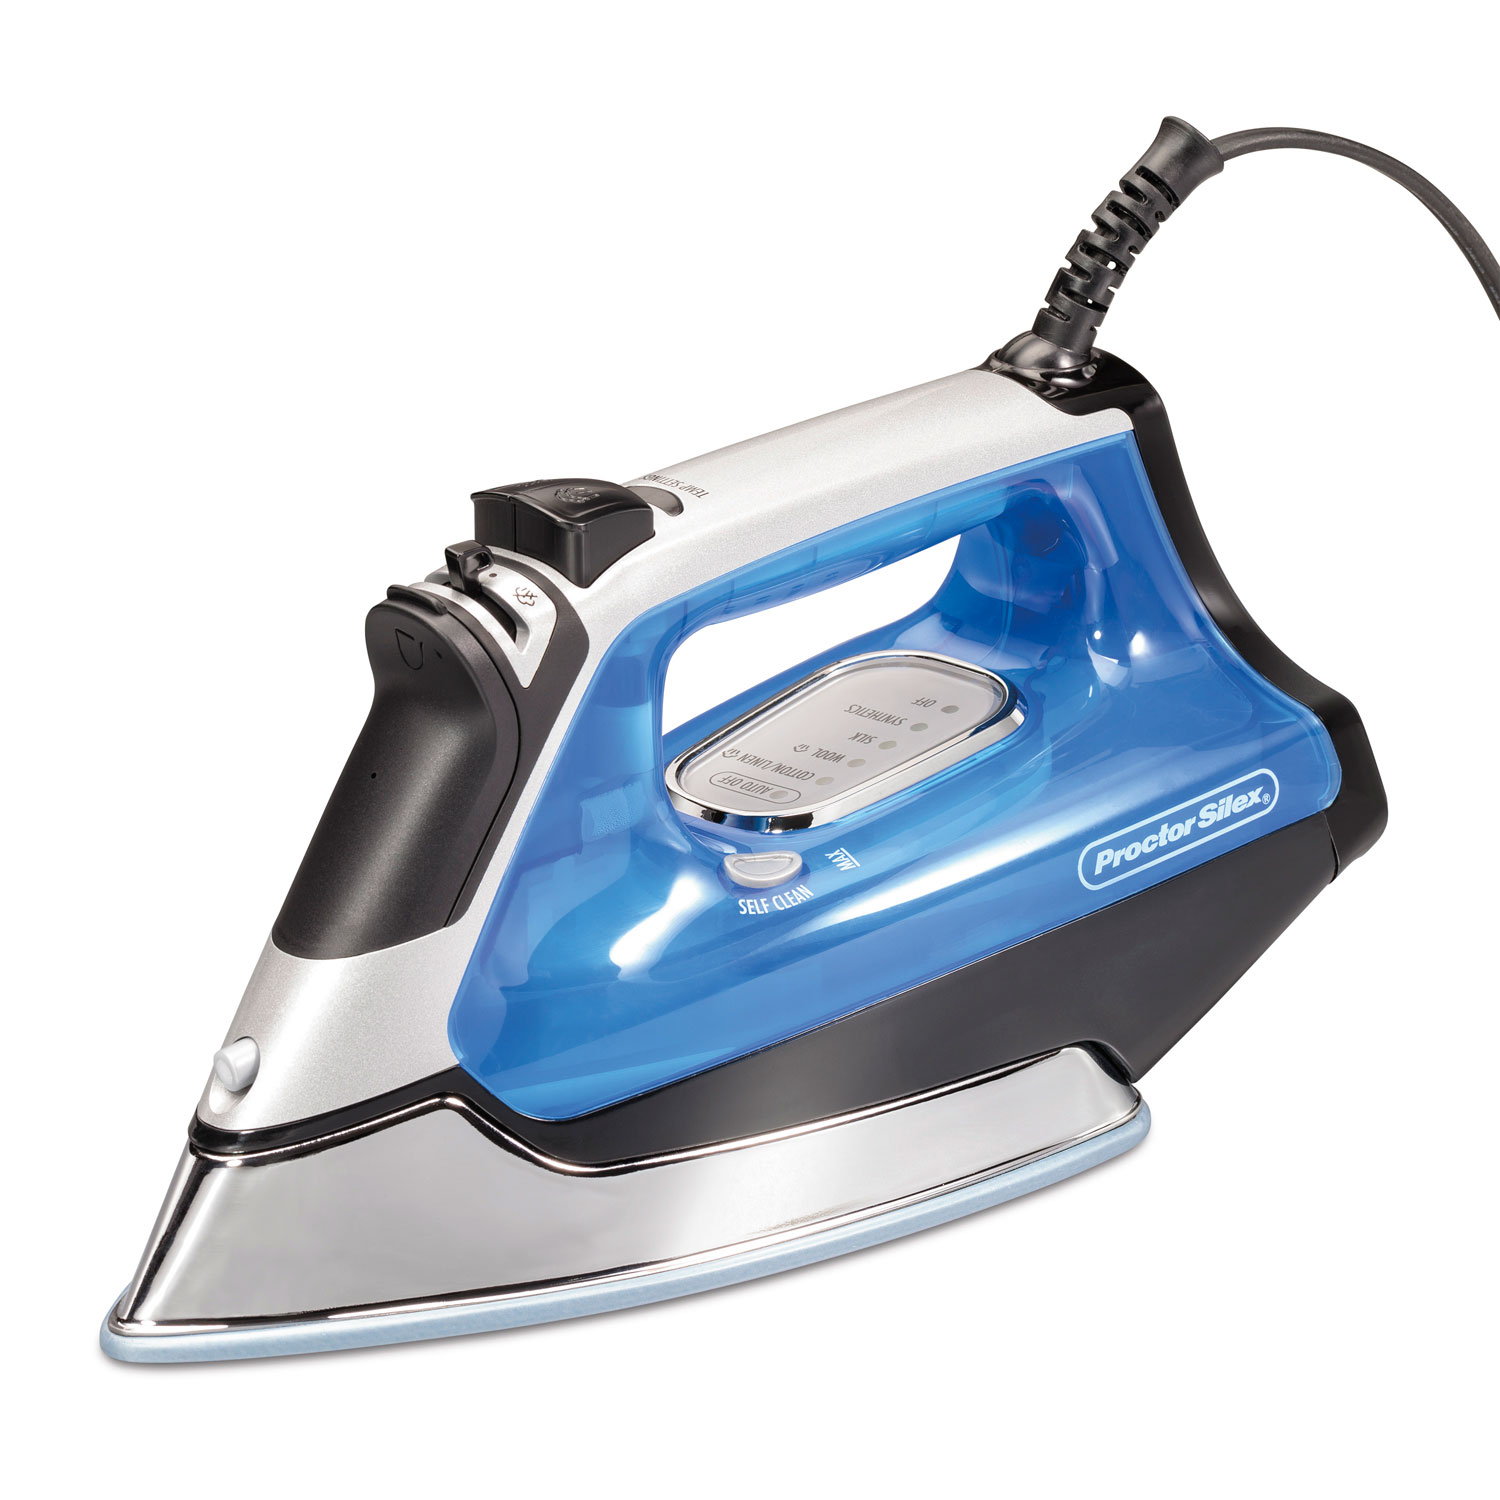 DuraGlide™ Ceramic Nonstick Electronic Iron-17010